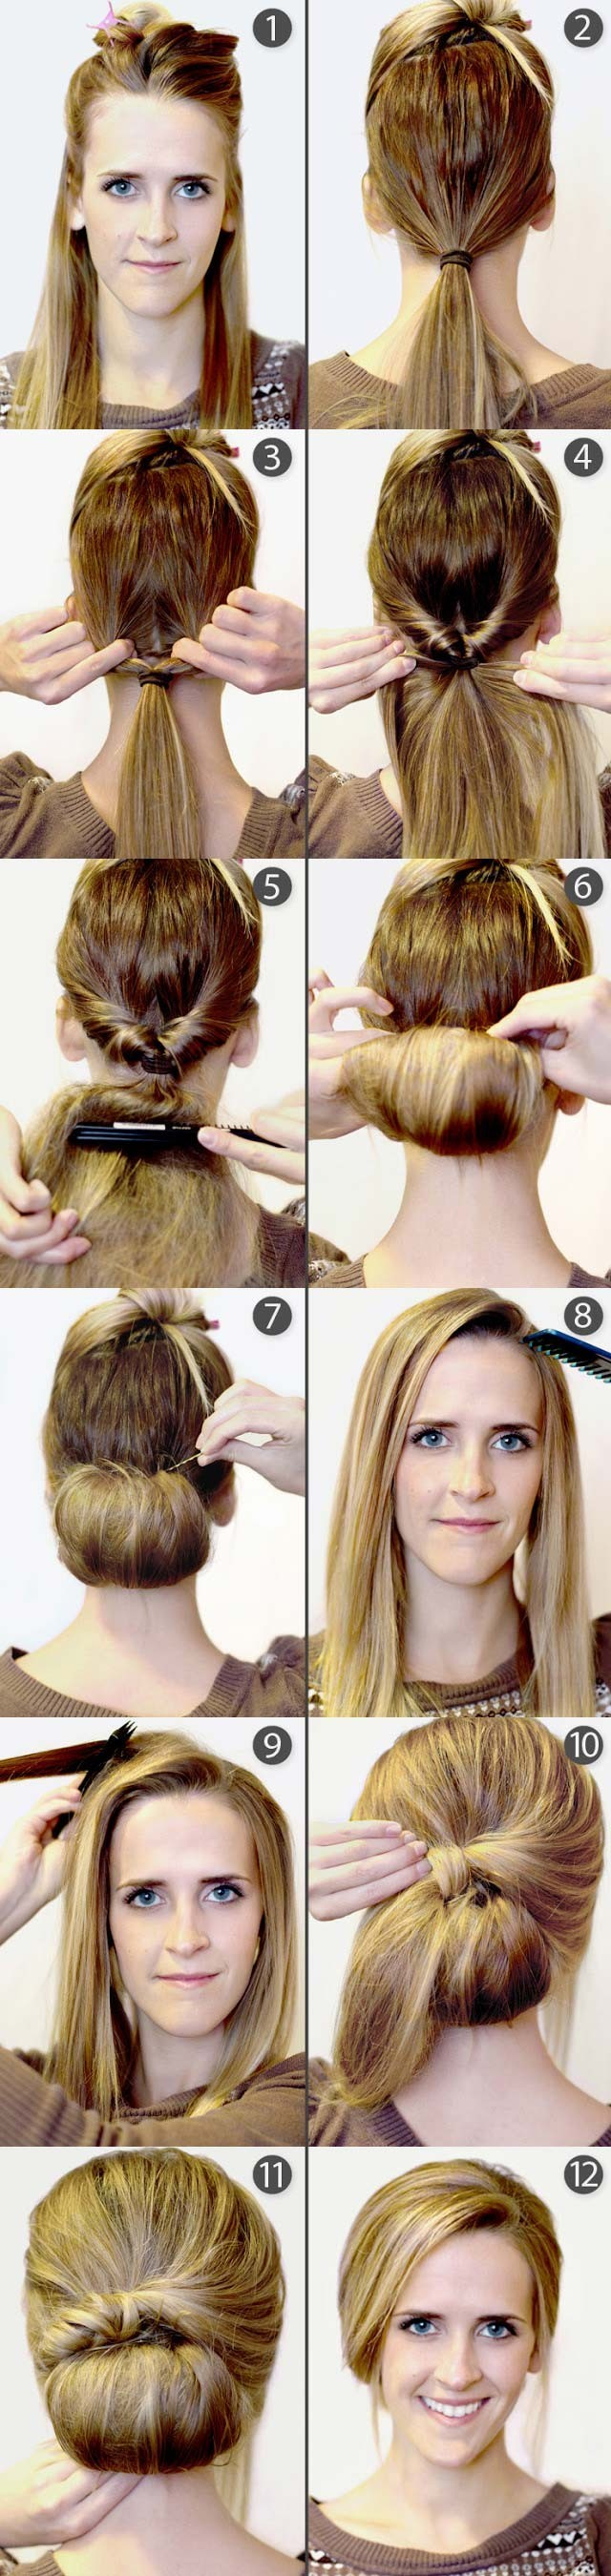 15 cute hairstyles step by step hairstyles for long hair. Black Bedroom Furniture Sets. Home Design Ideas